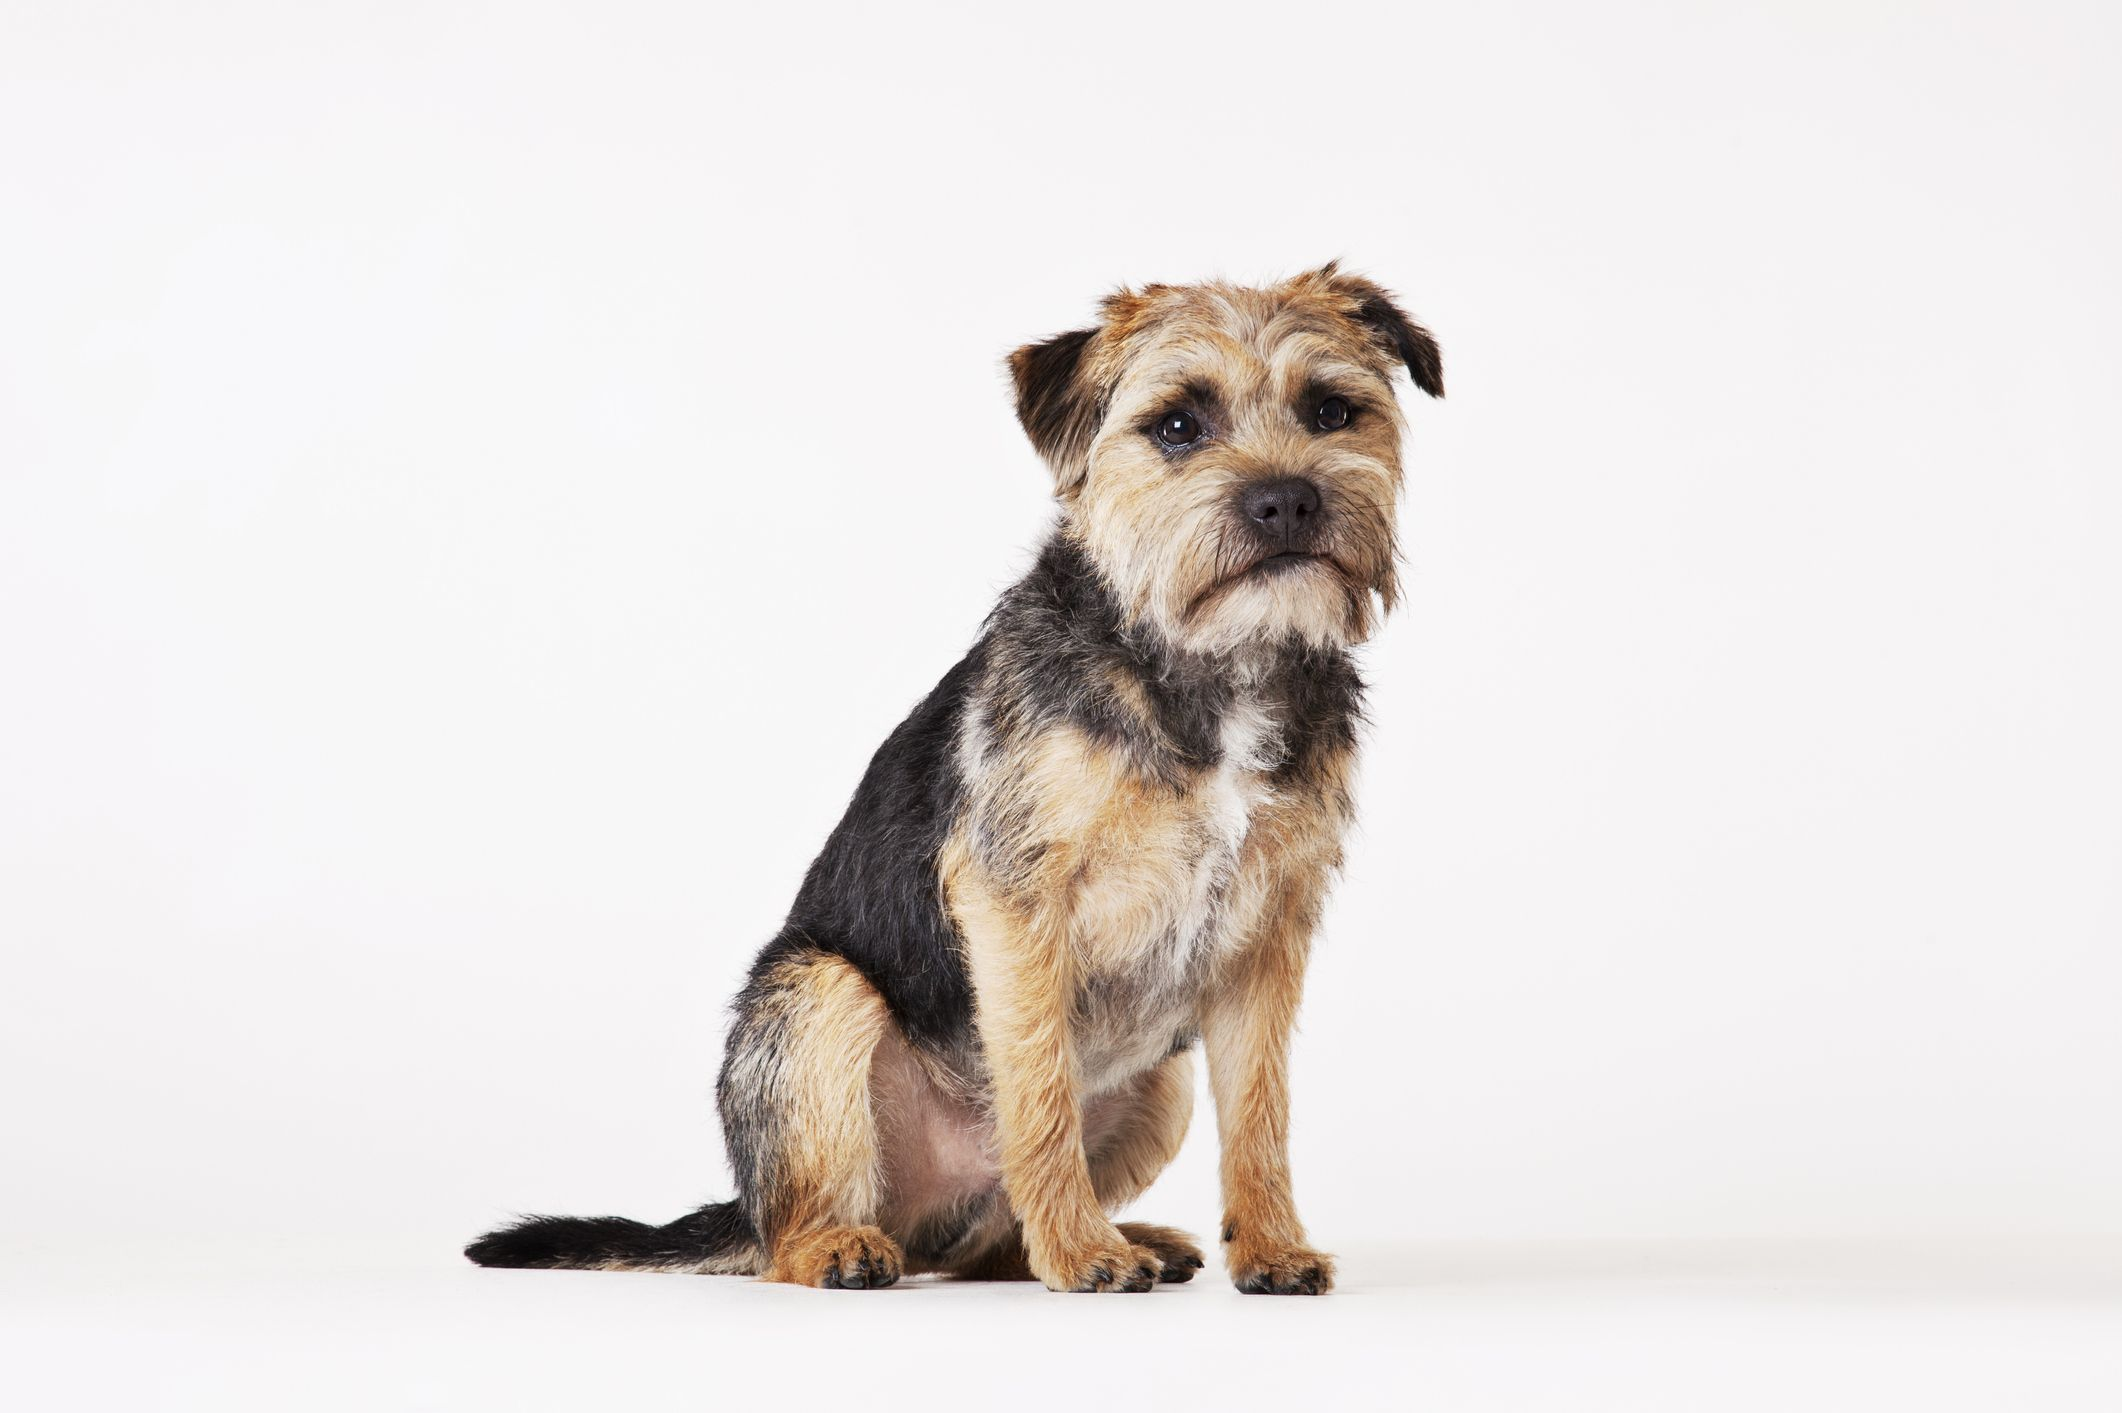 15 Dogs That Don't Shed - Hypoallergenic Dog Breeds